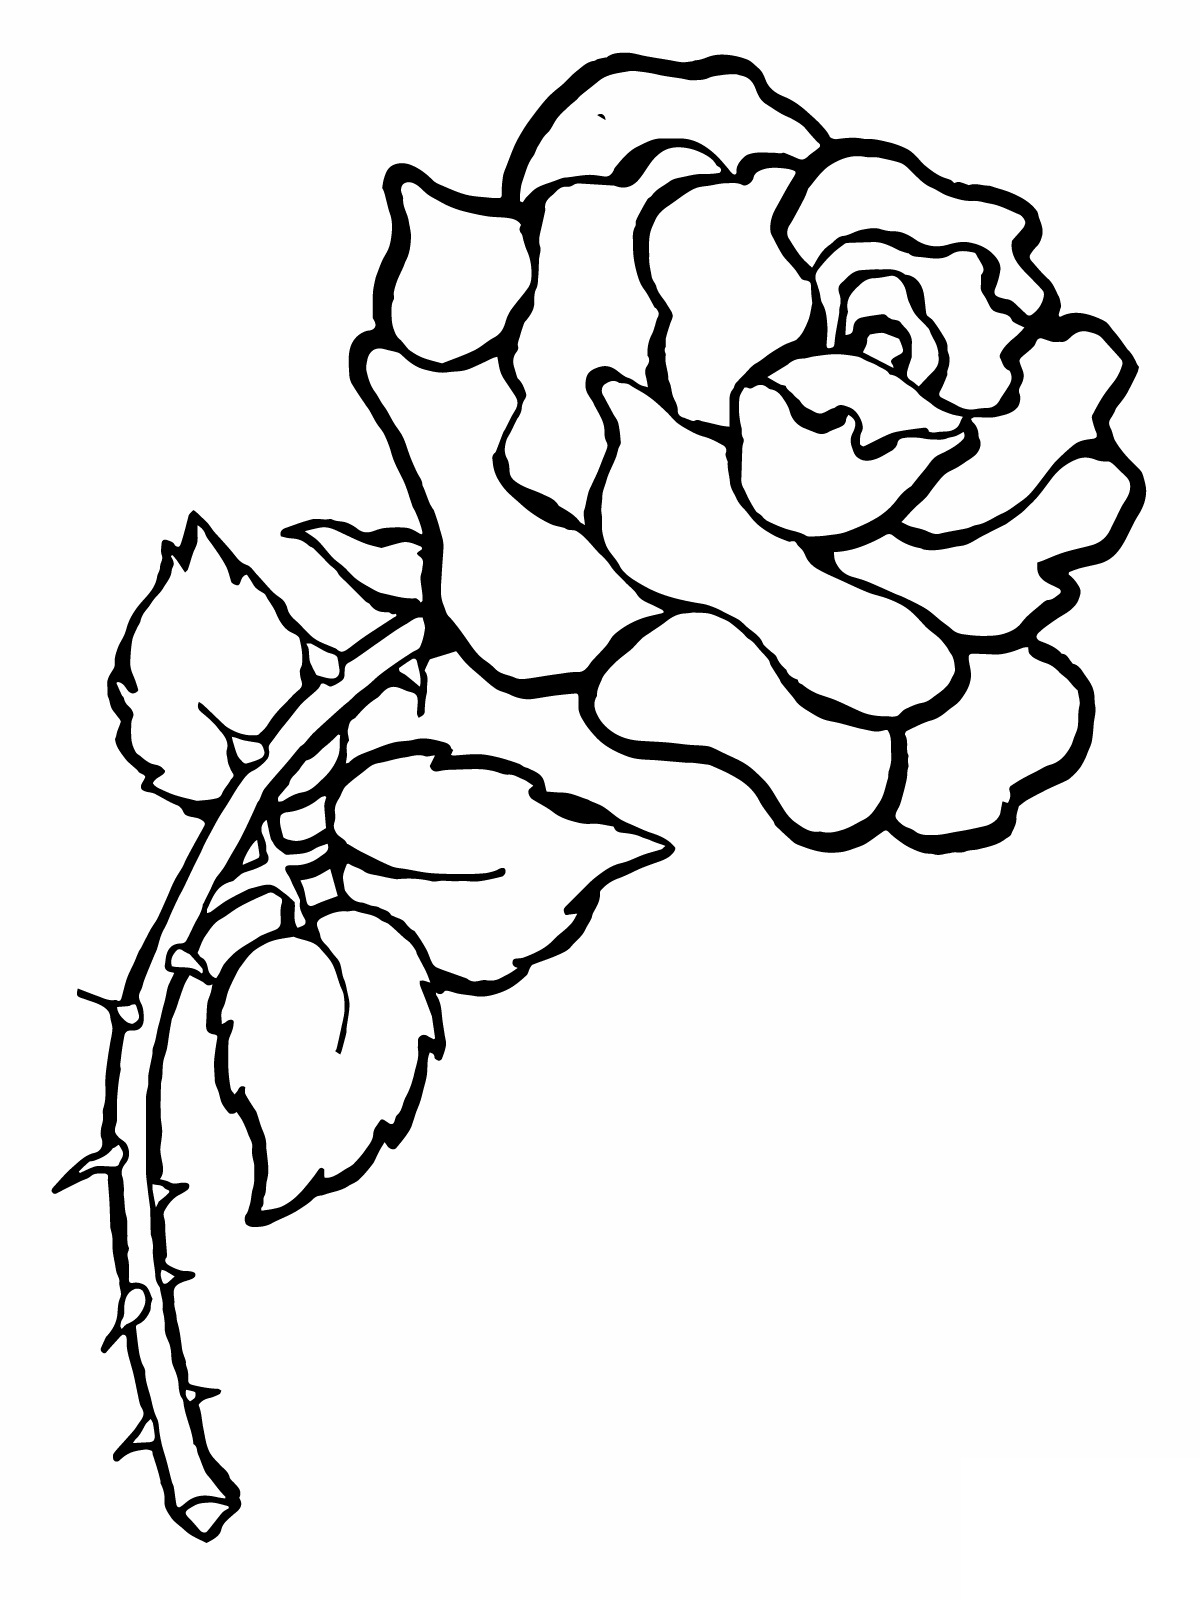 rose coloring pages to print free roses printable adult coloring page the graphics fairy to pages coloring rose print